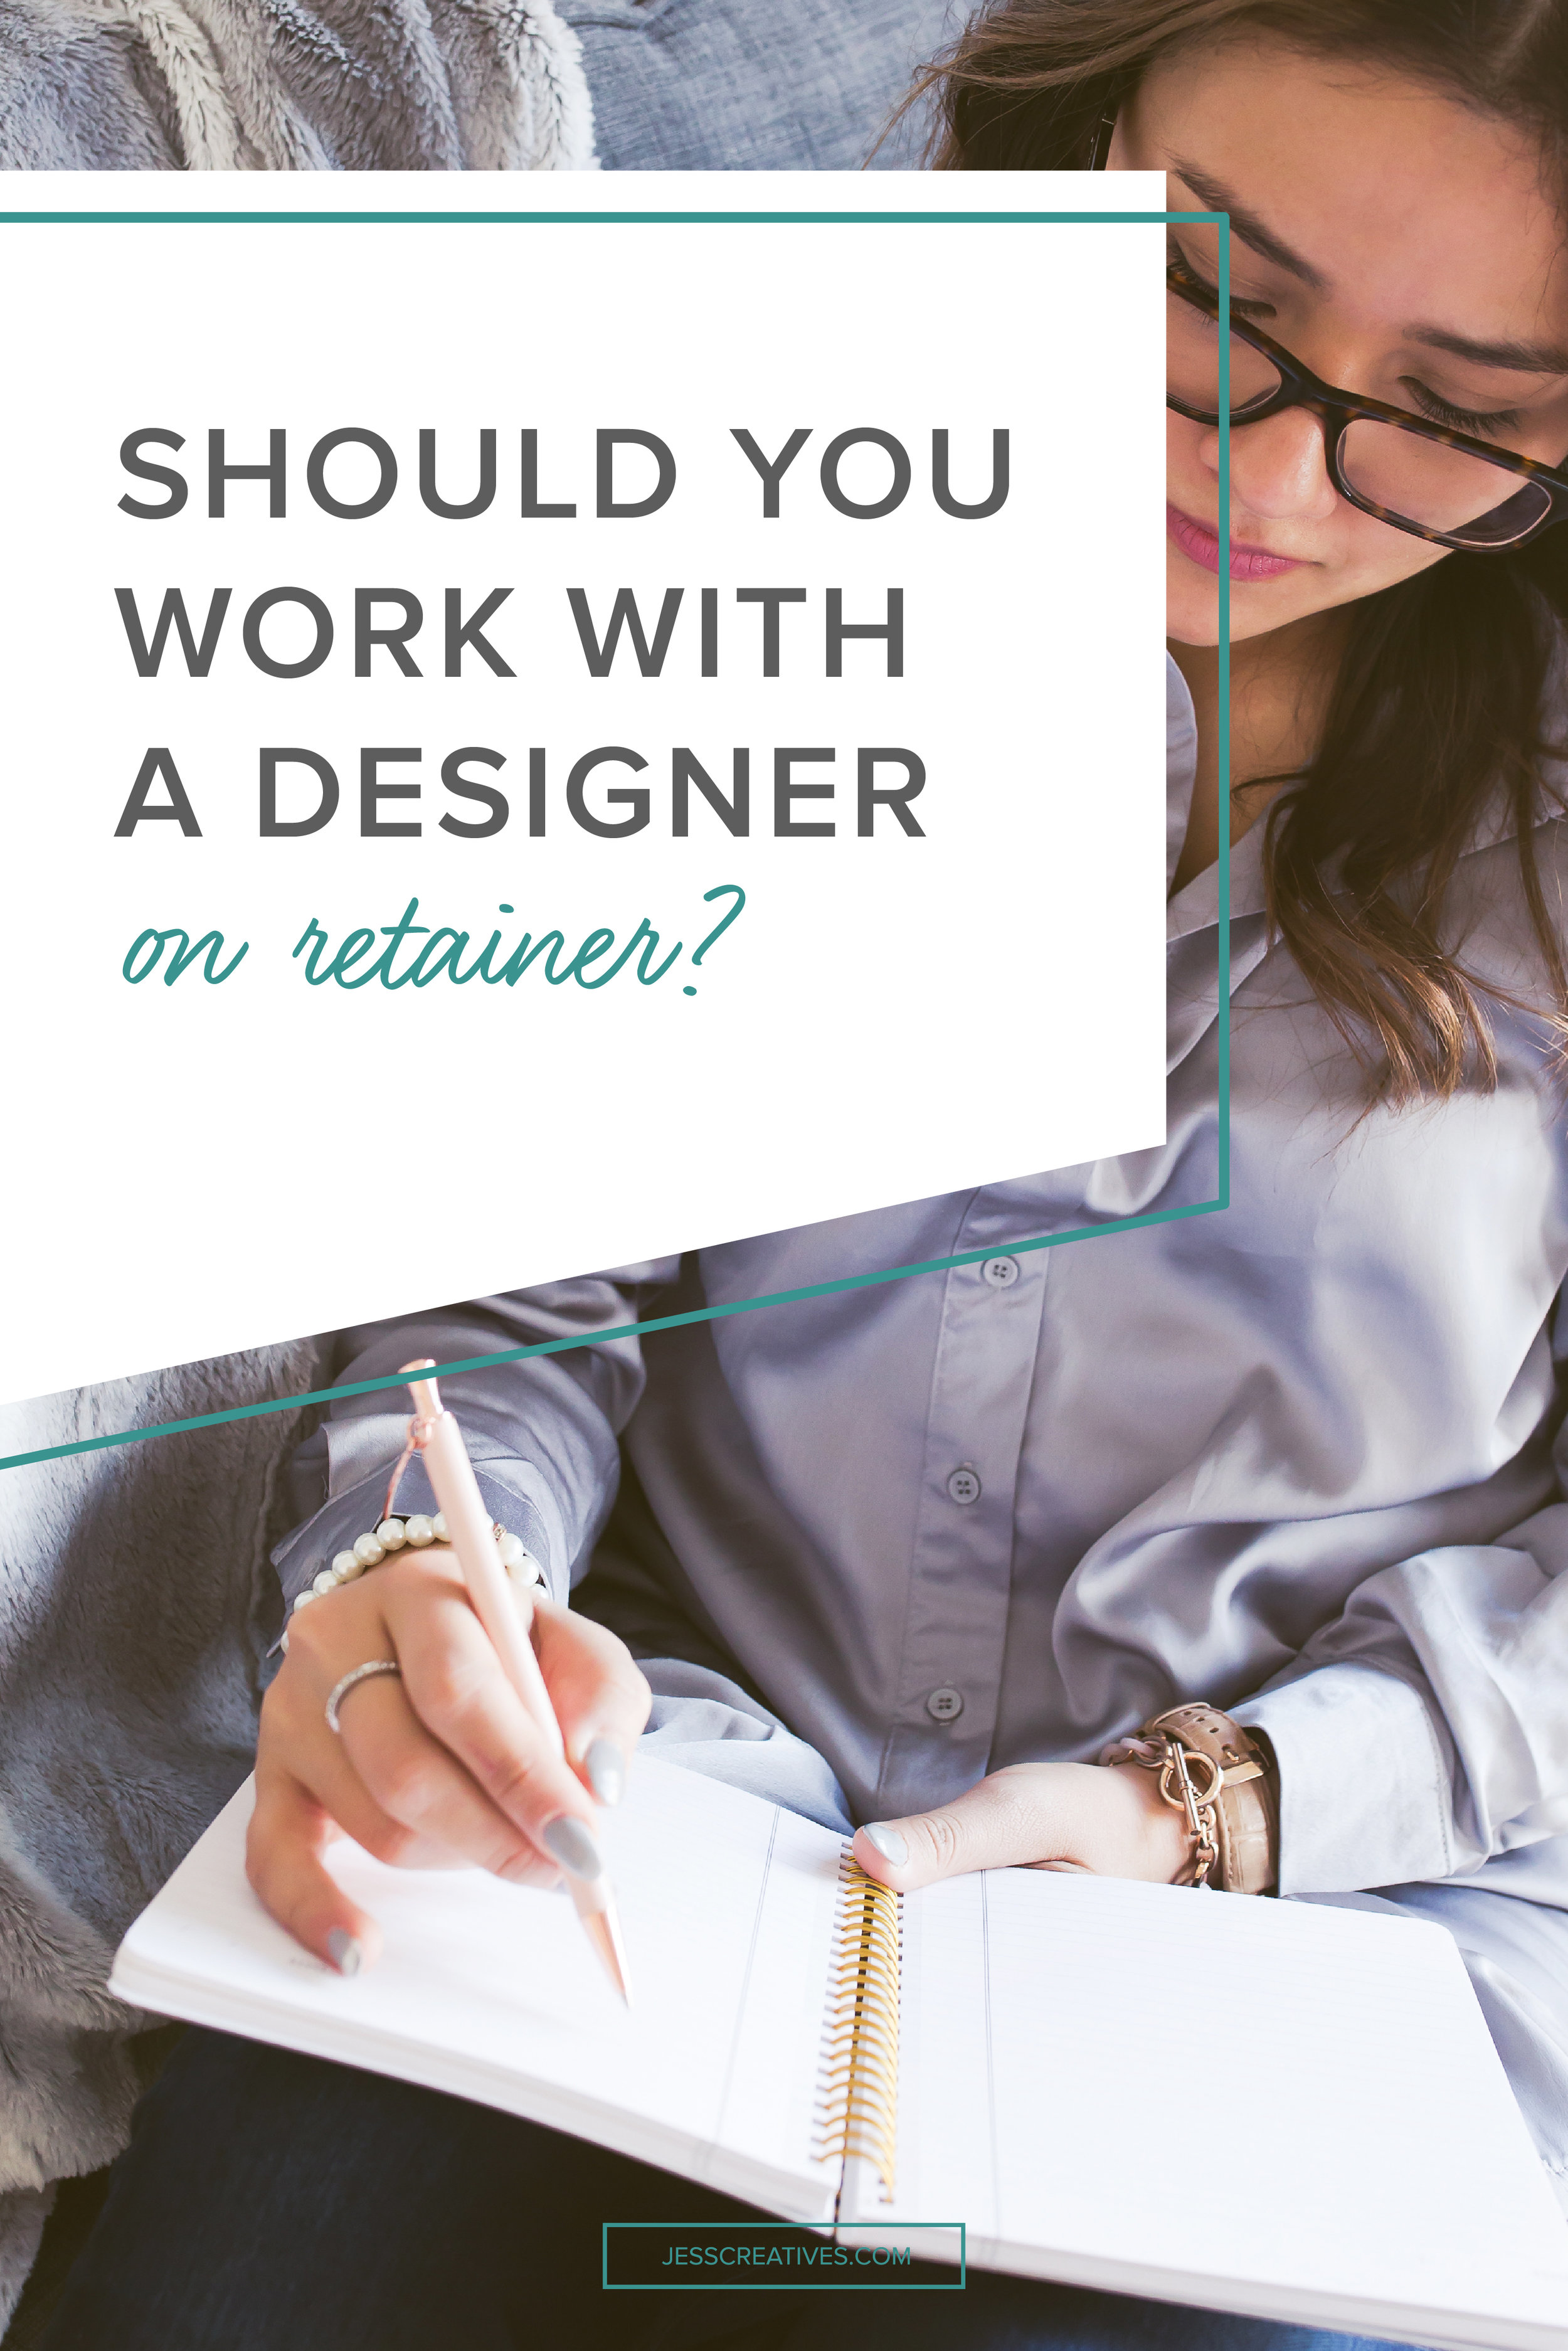 Should You Work with a Designer on Retainer?